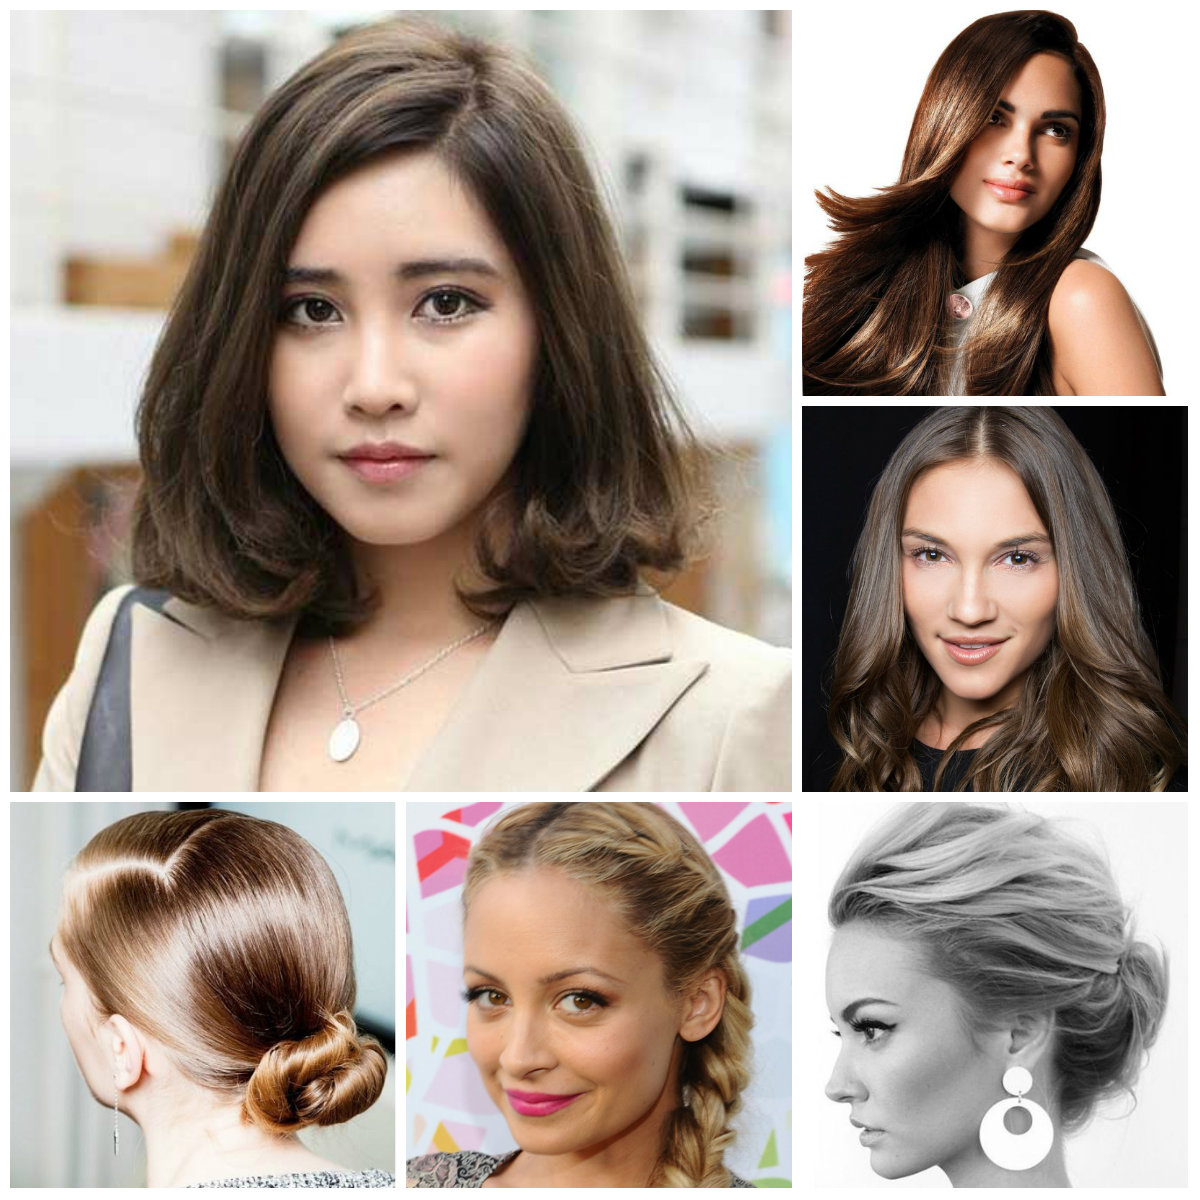 hairstyles for work 2016